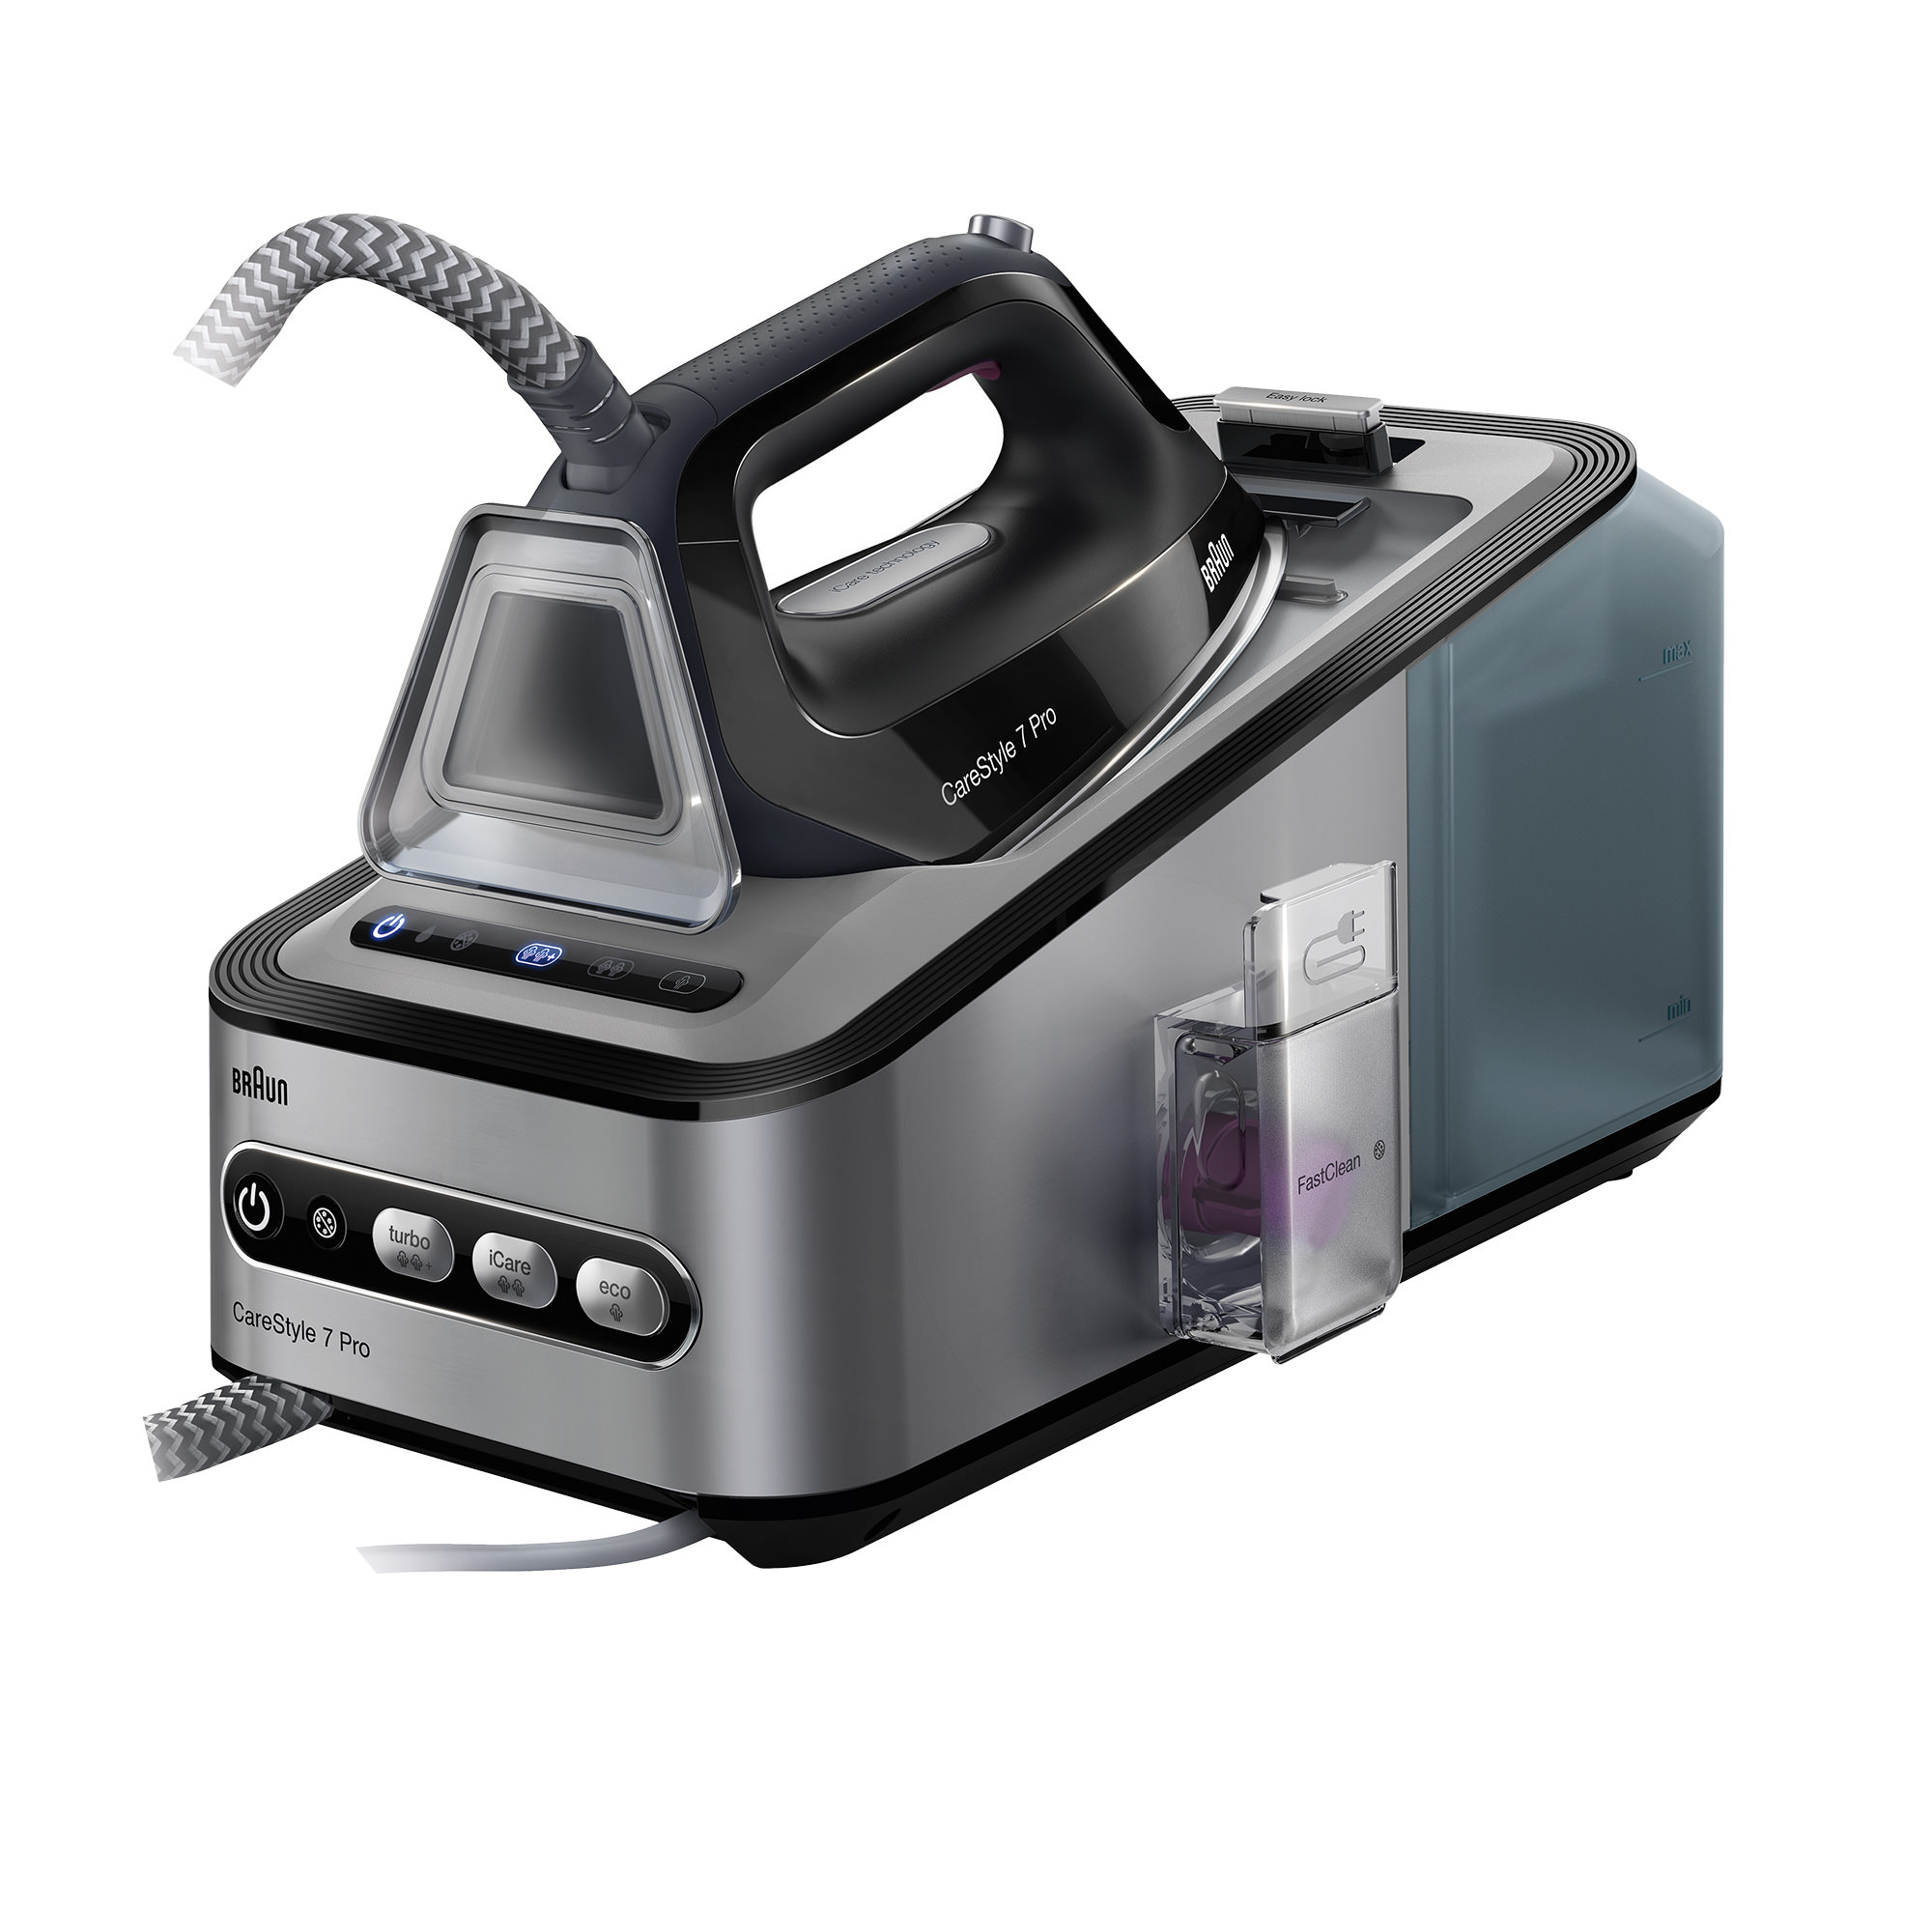 Braun CareStyle 7 Steam Generator Iron Black